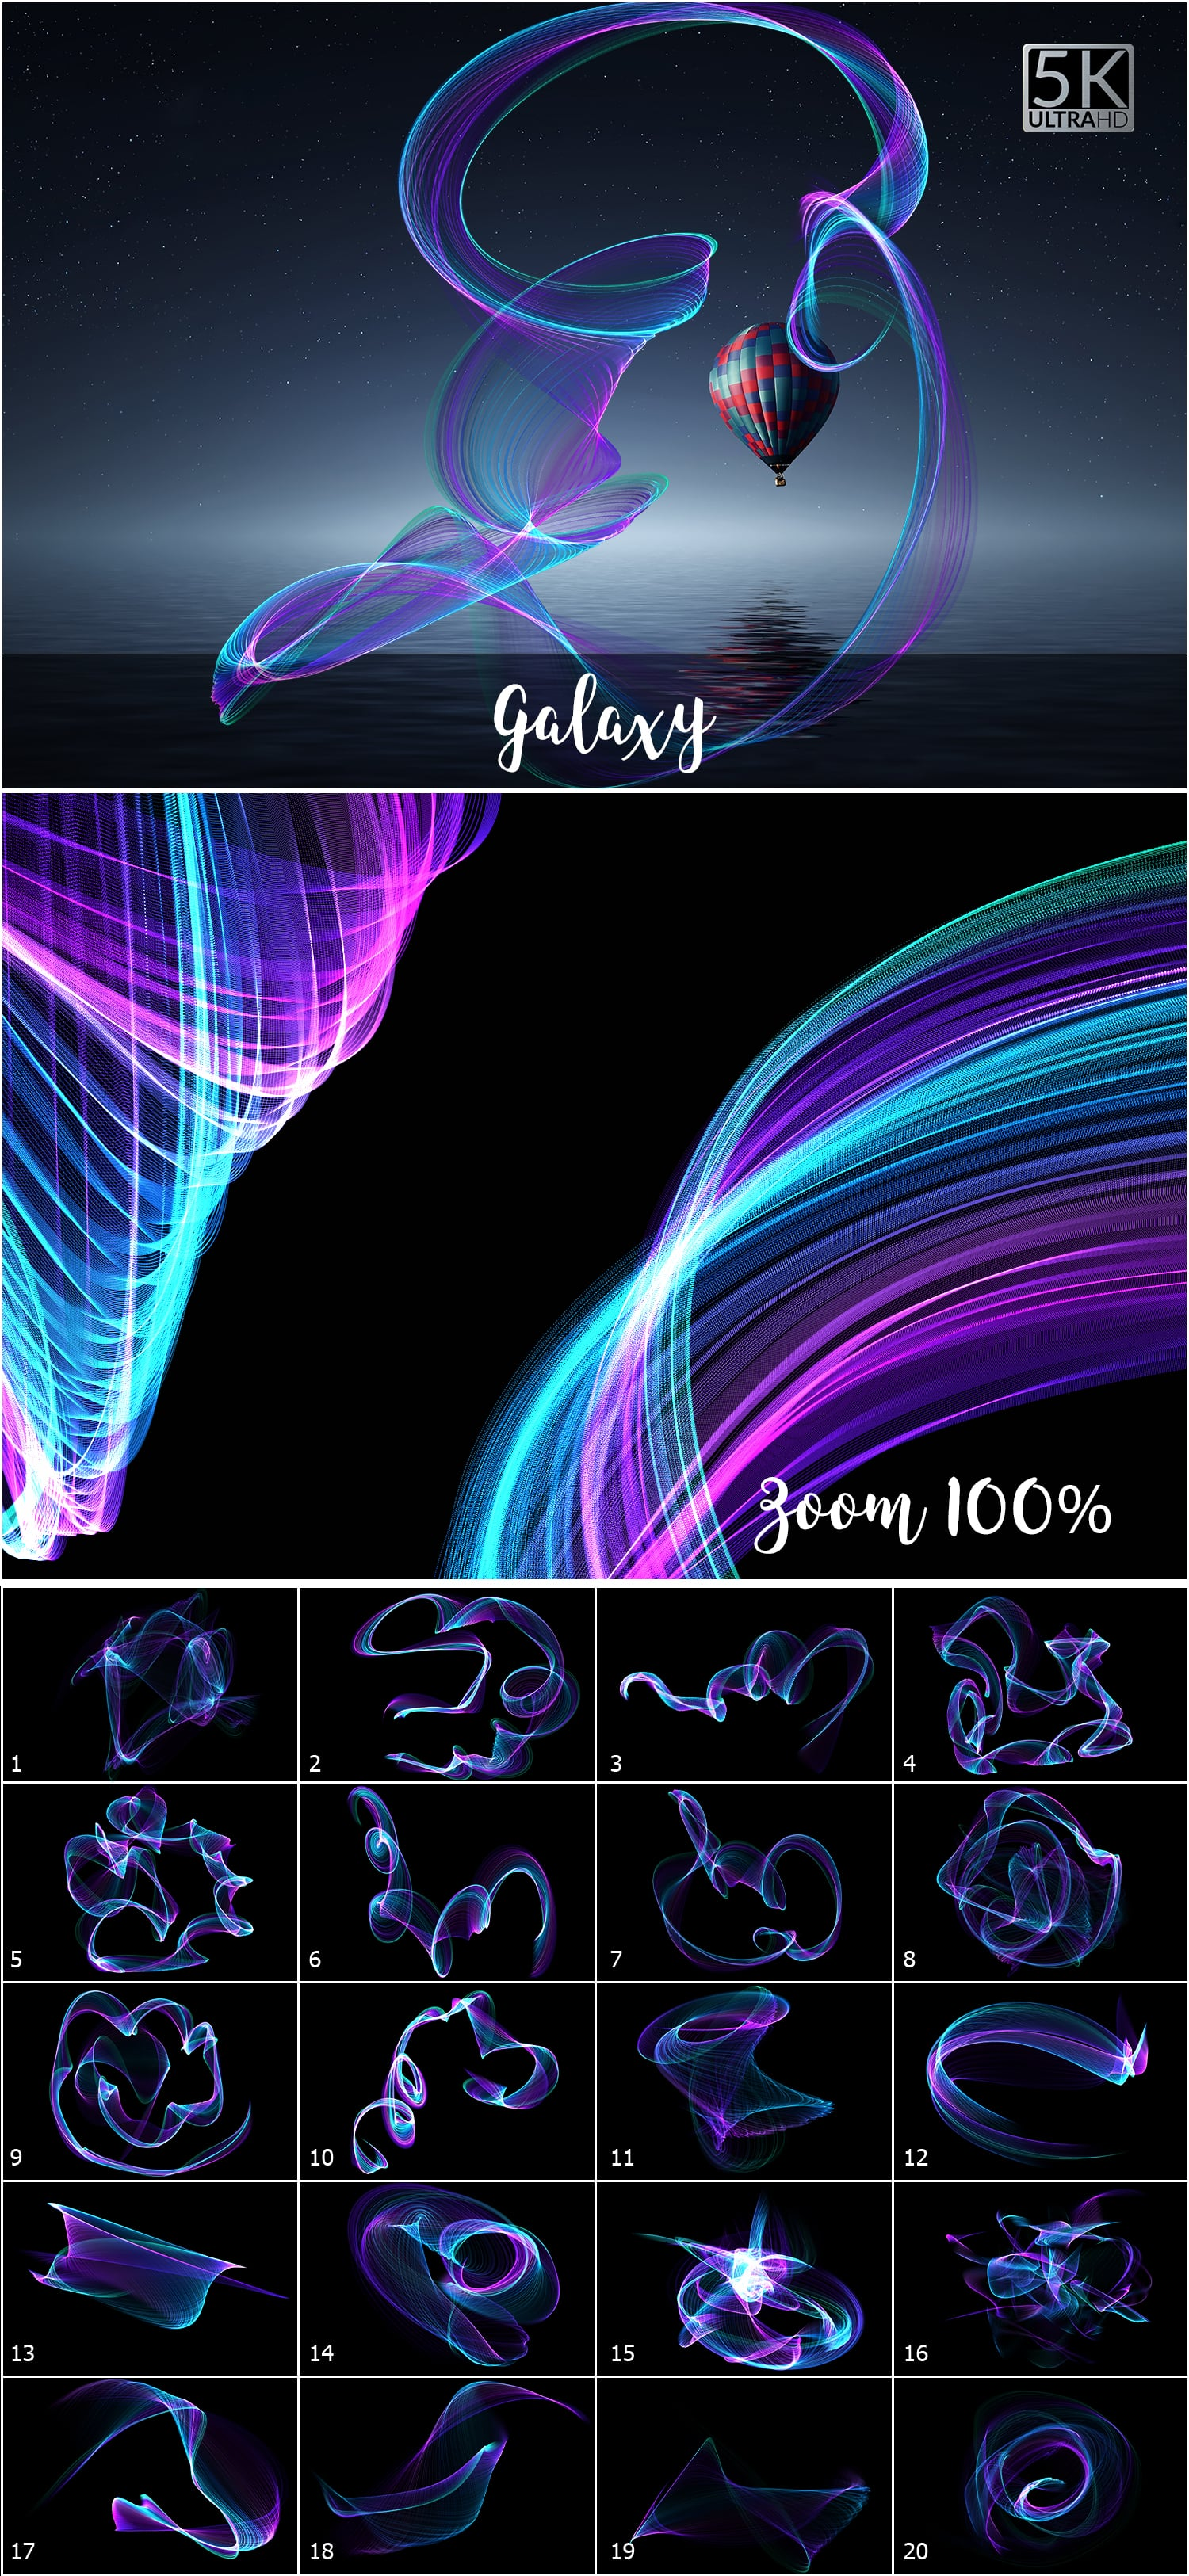 1053 Spectacular Overlays png - Only $18! - 11 Galaxy